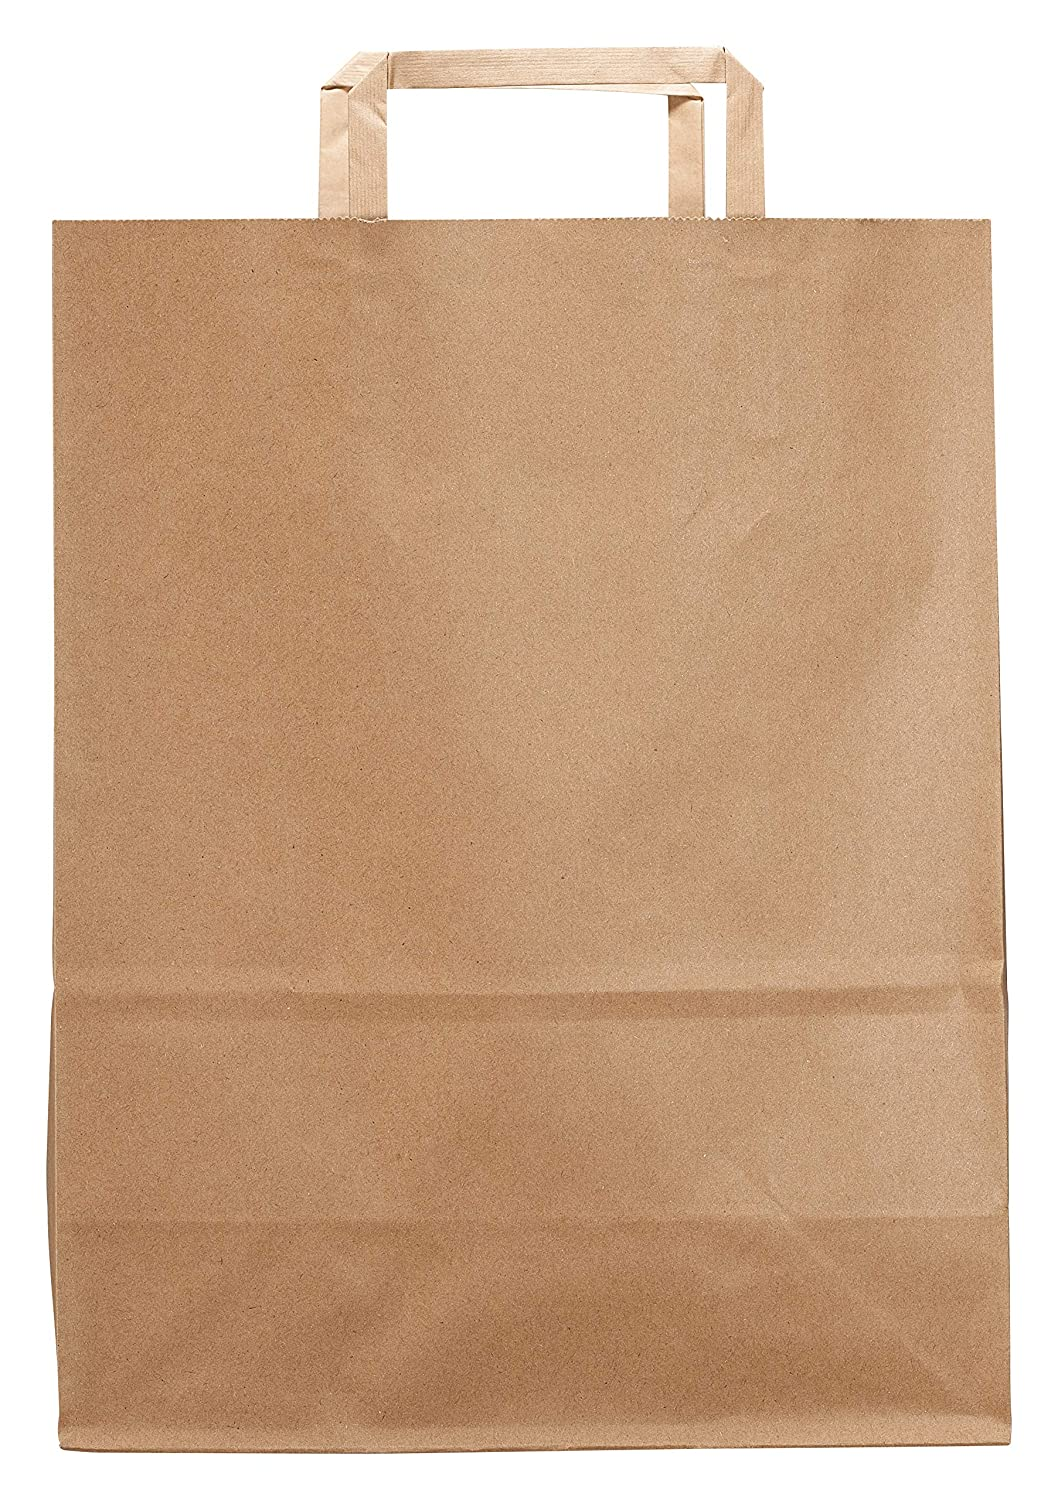 Medium Kraft Brown Paper Bags with Paper Handles